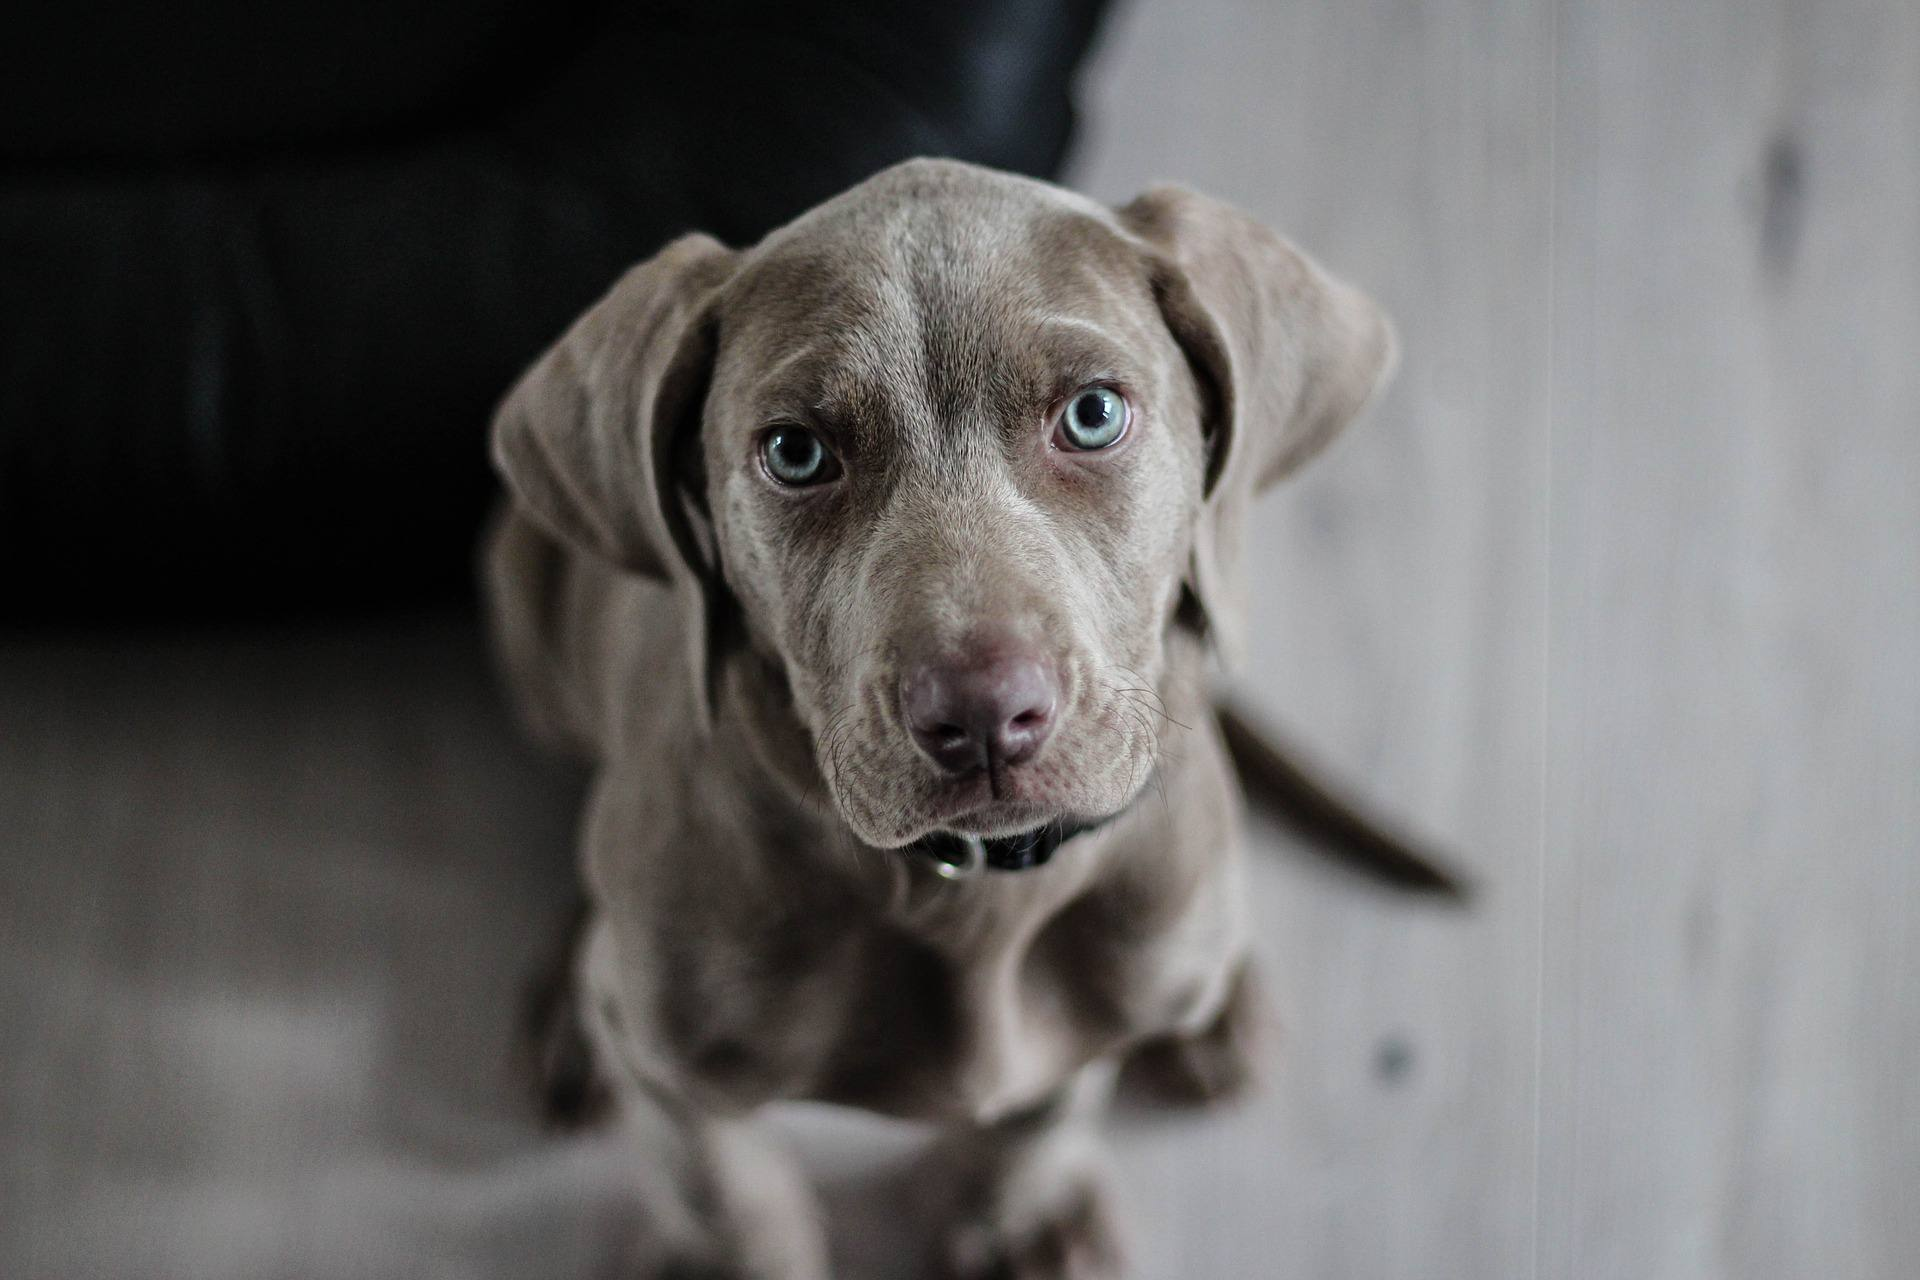 A Weimaraner puppy looking up at the camera.